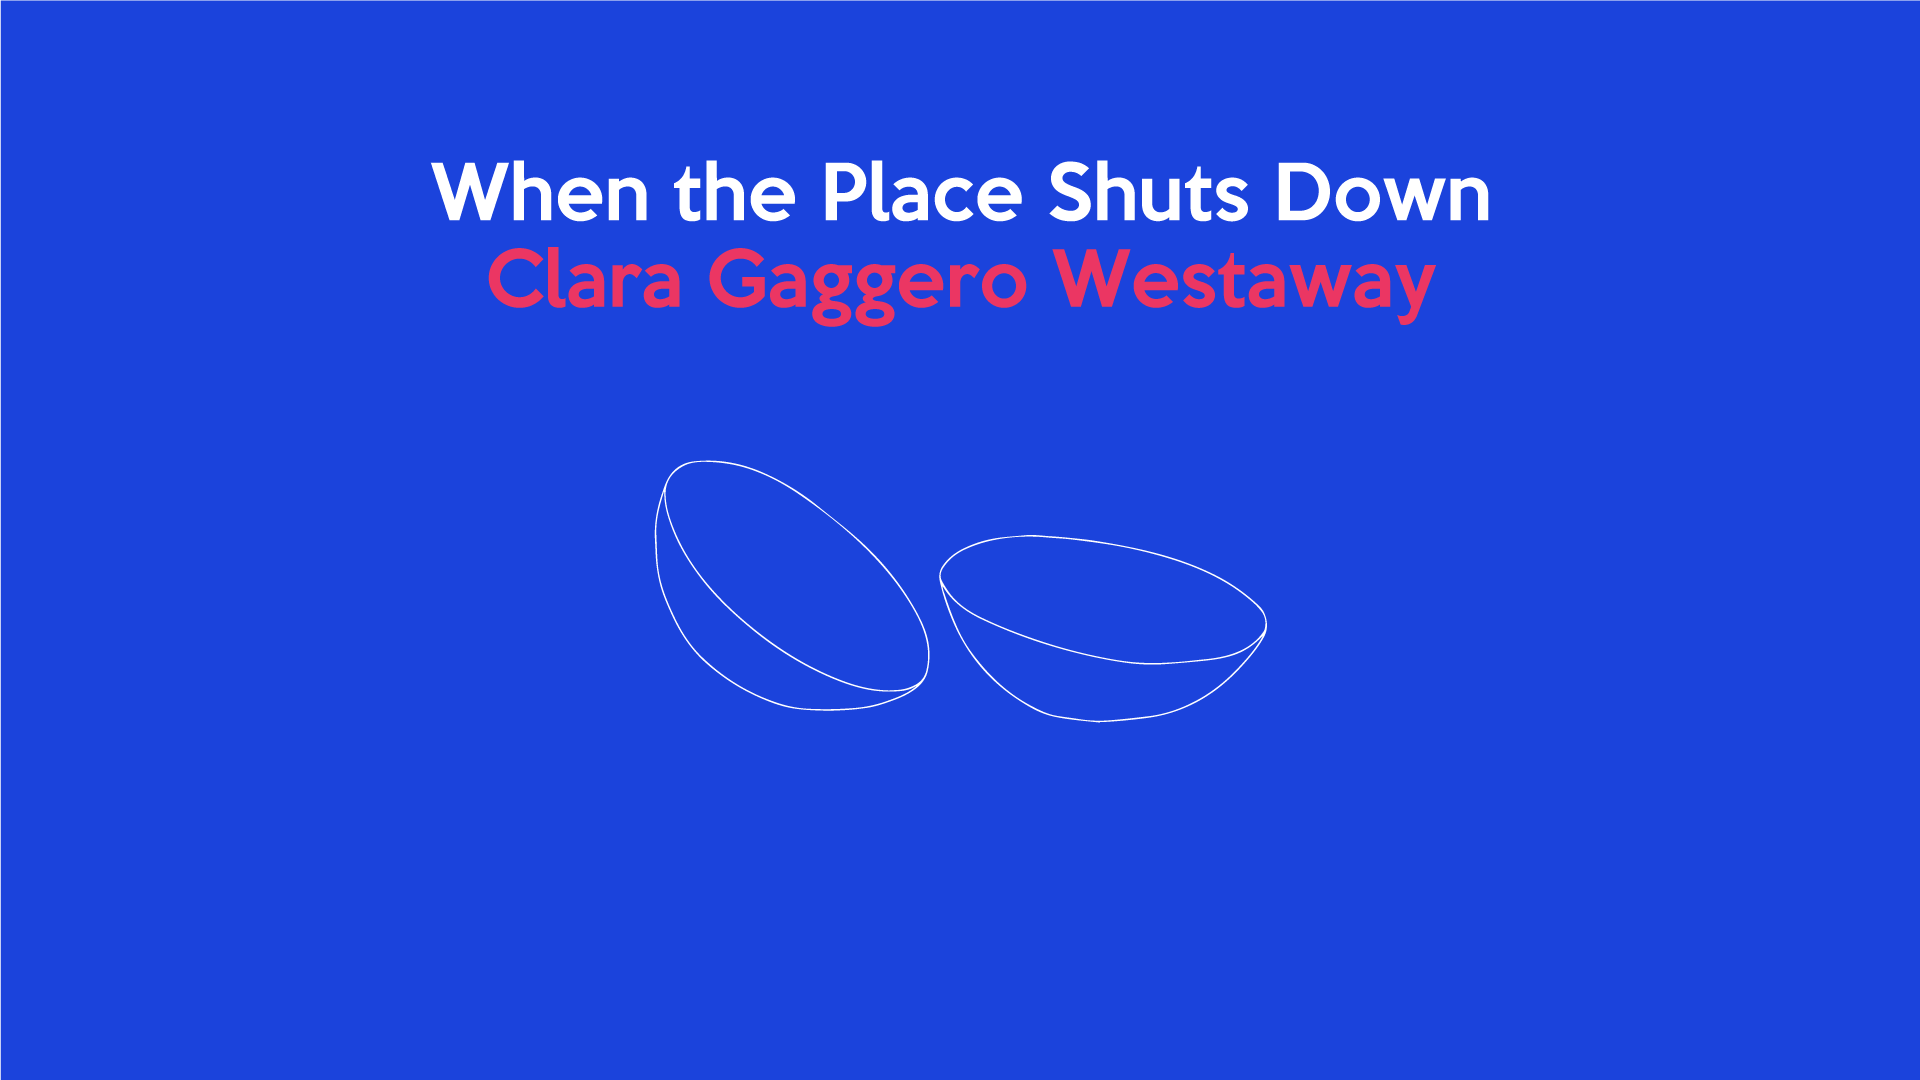 When the Place Shuts Down: Clara Gaggero Westaway